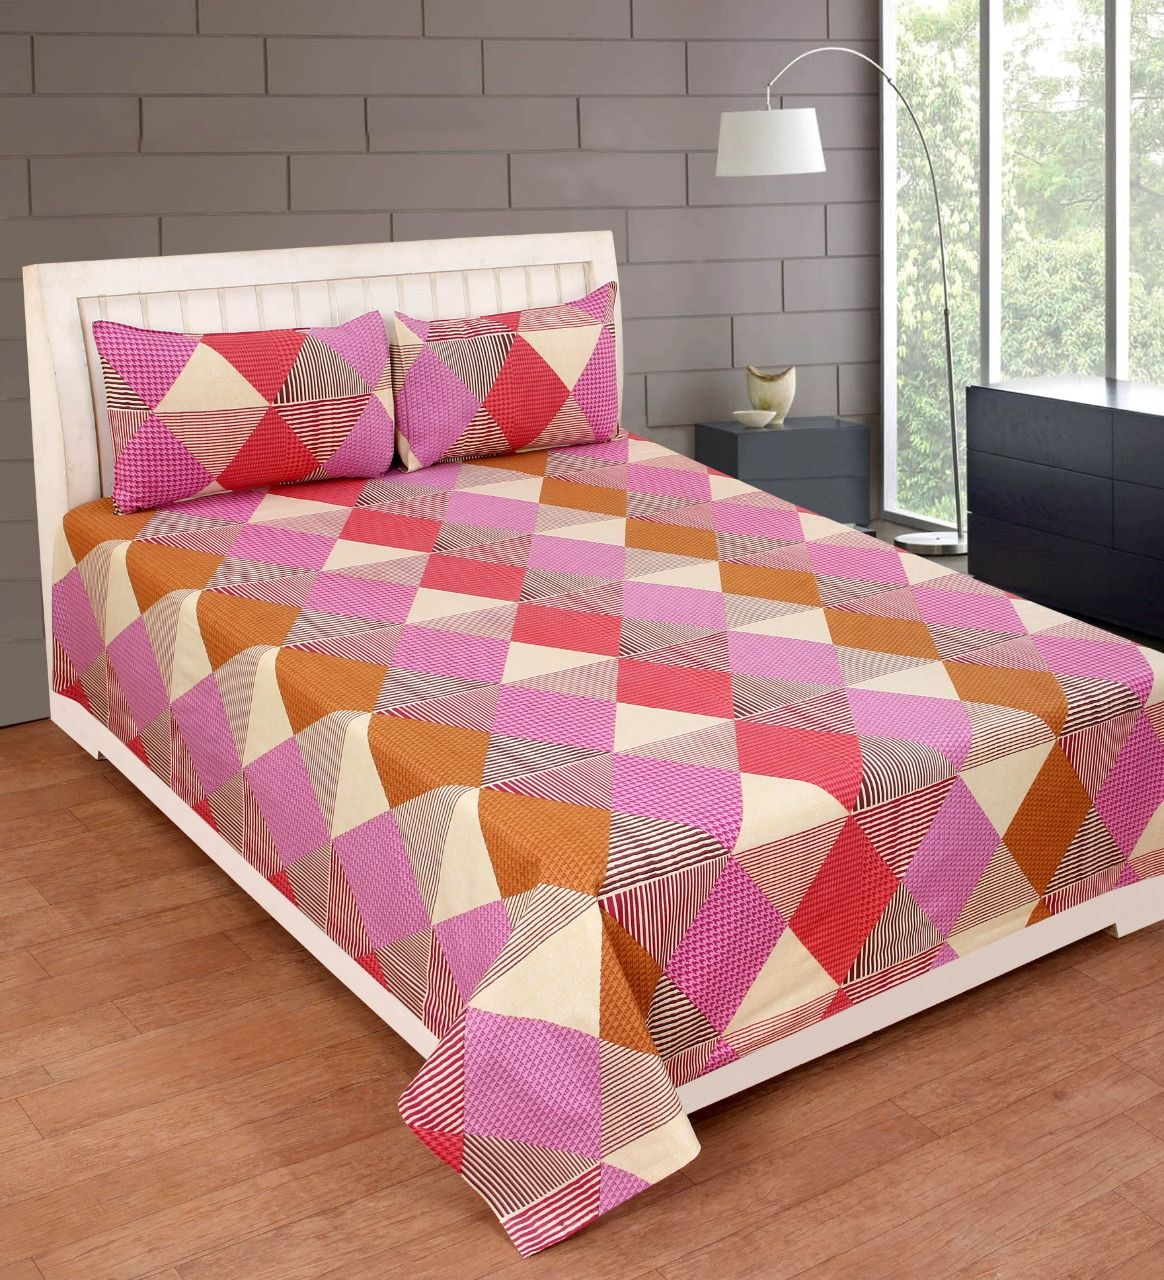 Home textiles manufacturers in India in 2020 Home